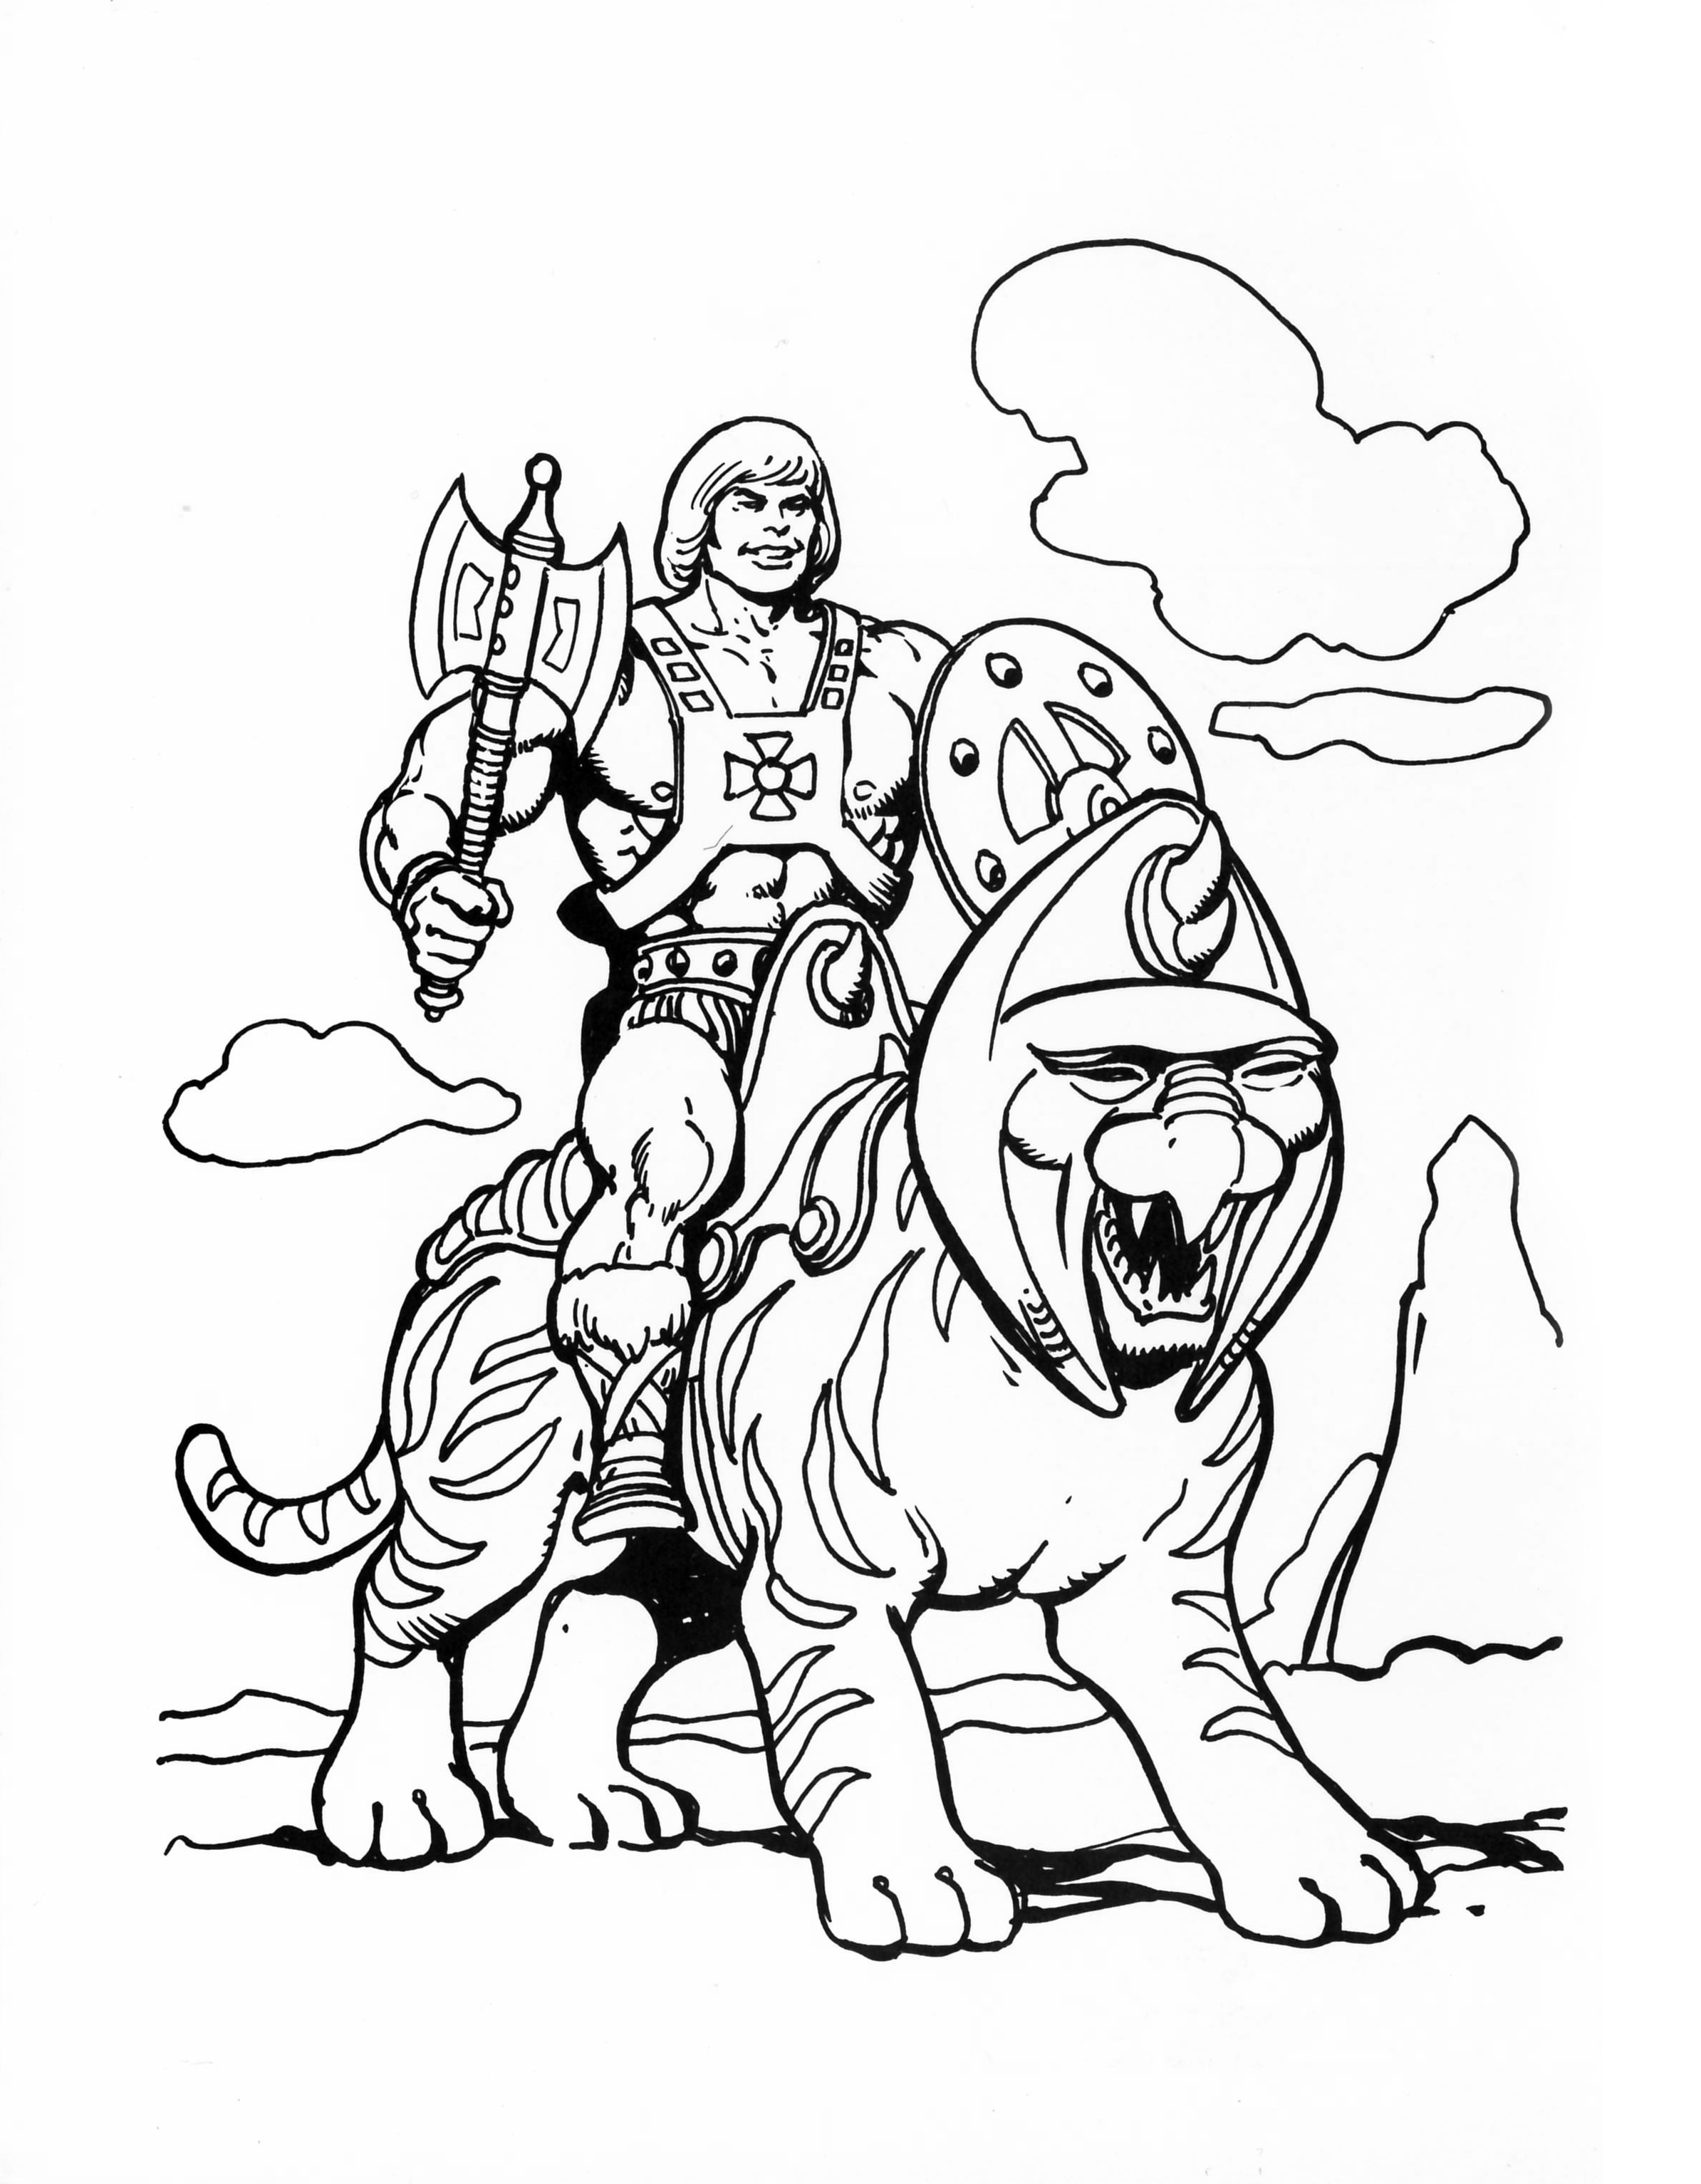 He-Man.org > Publishing > Books > Golden Coloring